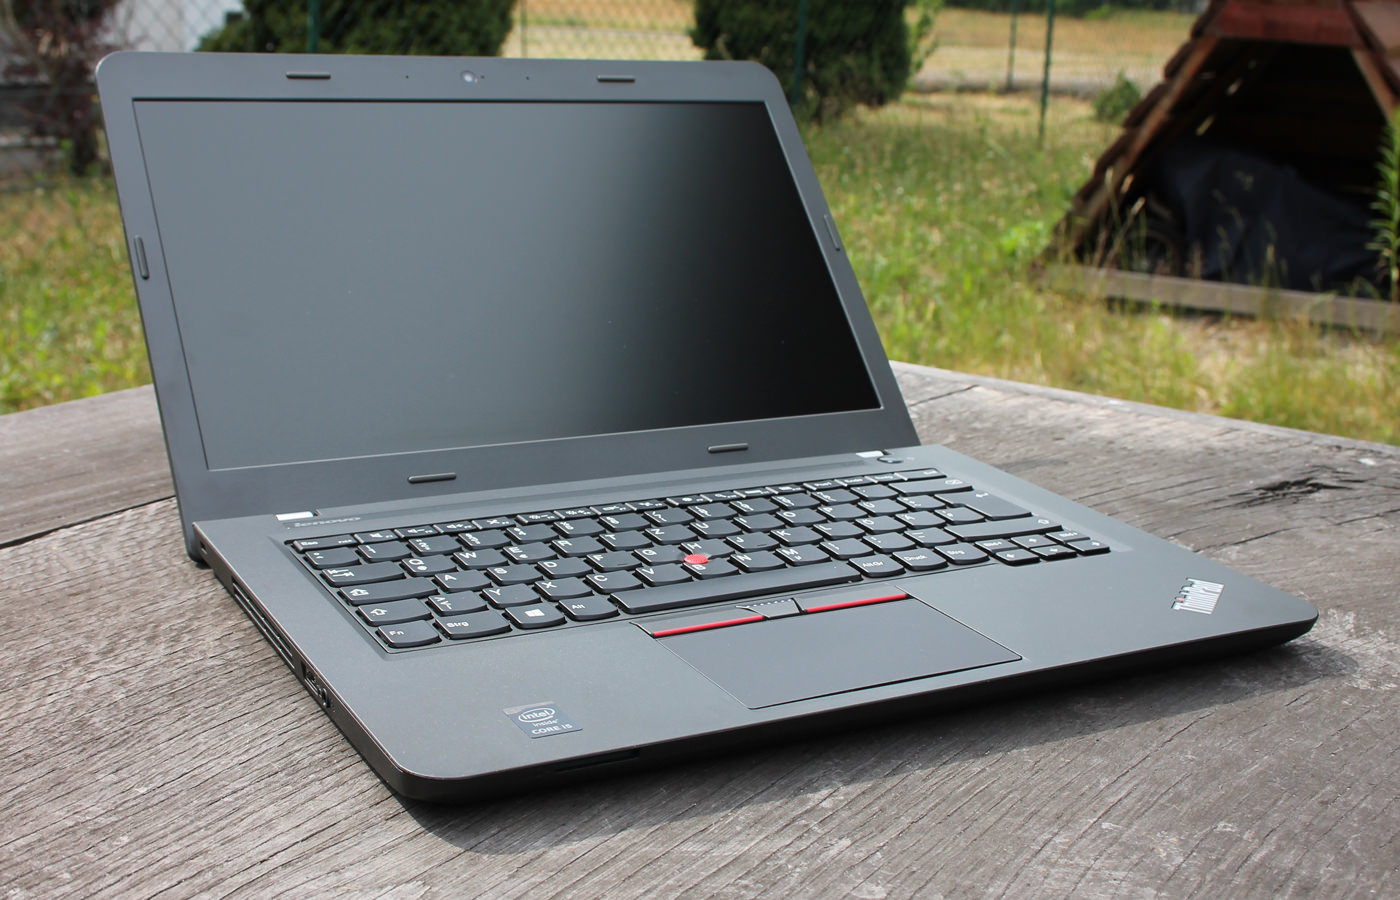 ThinkPad E460 (Large).jpg